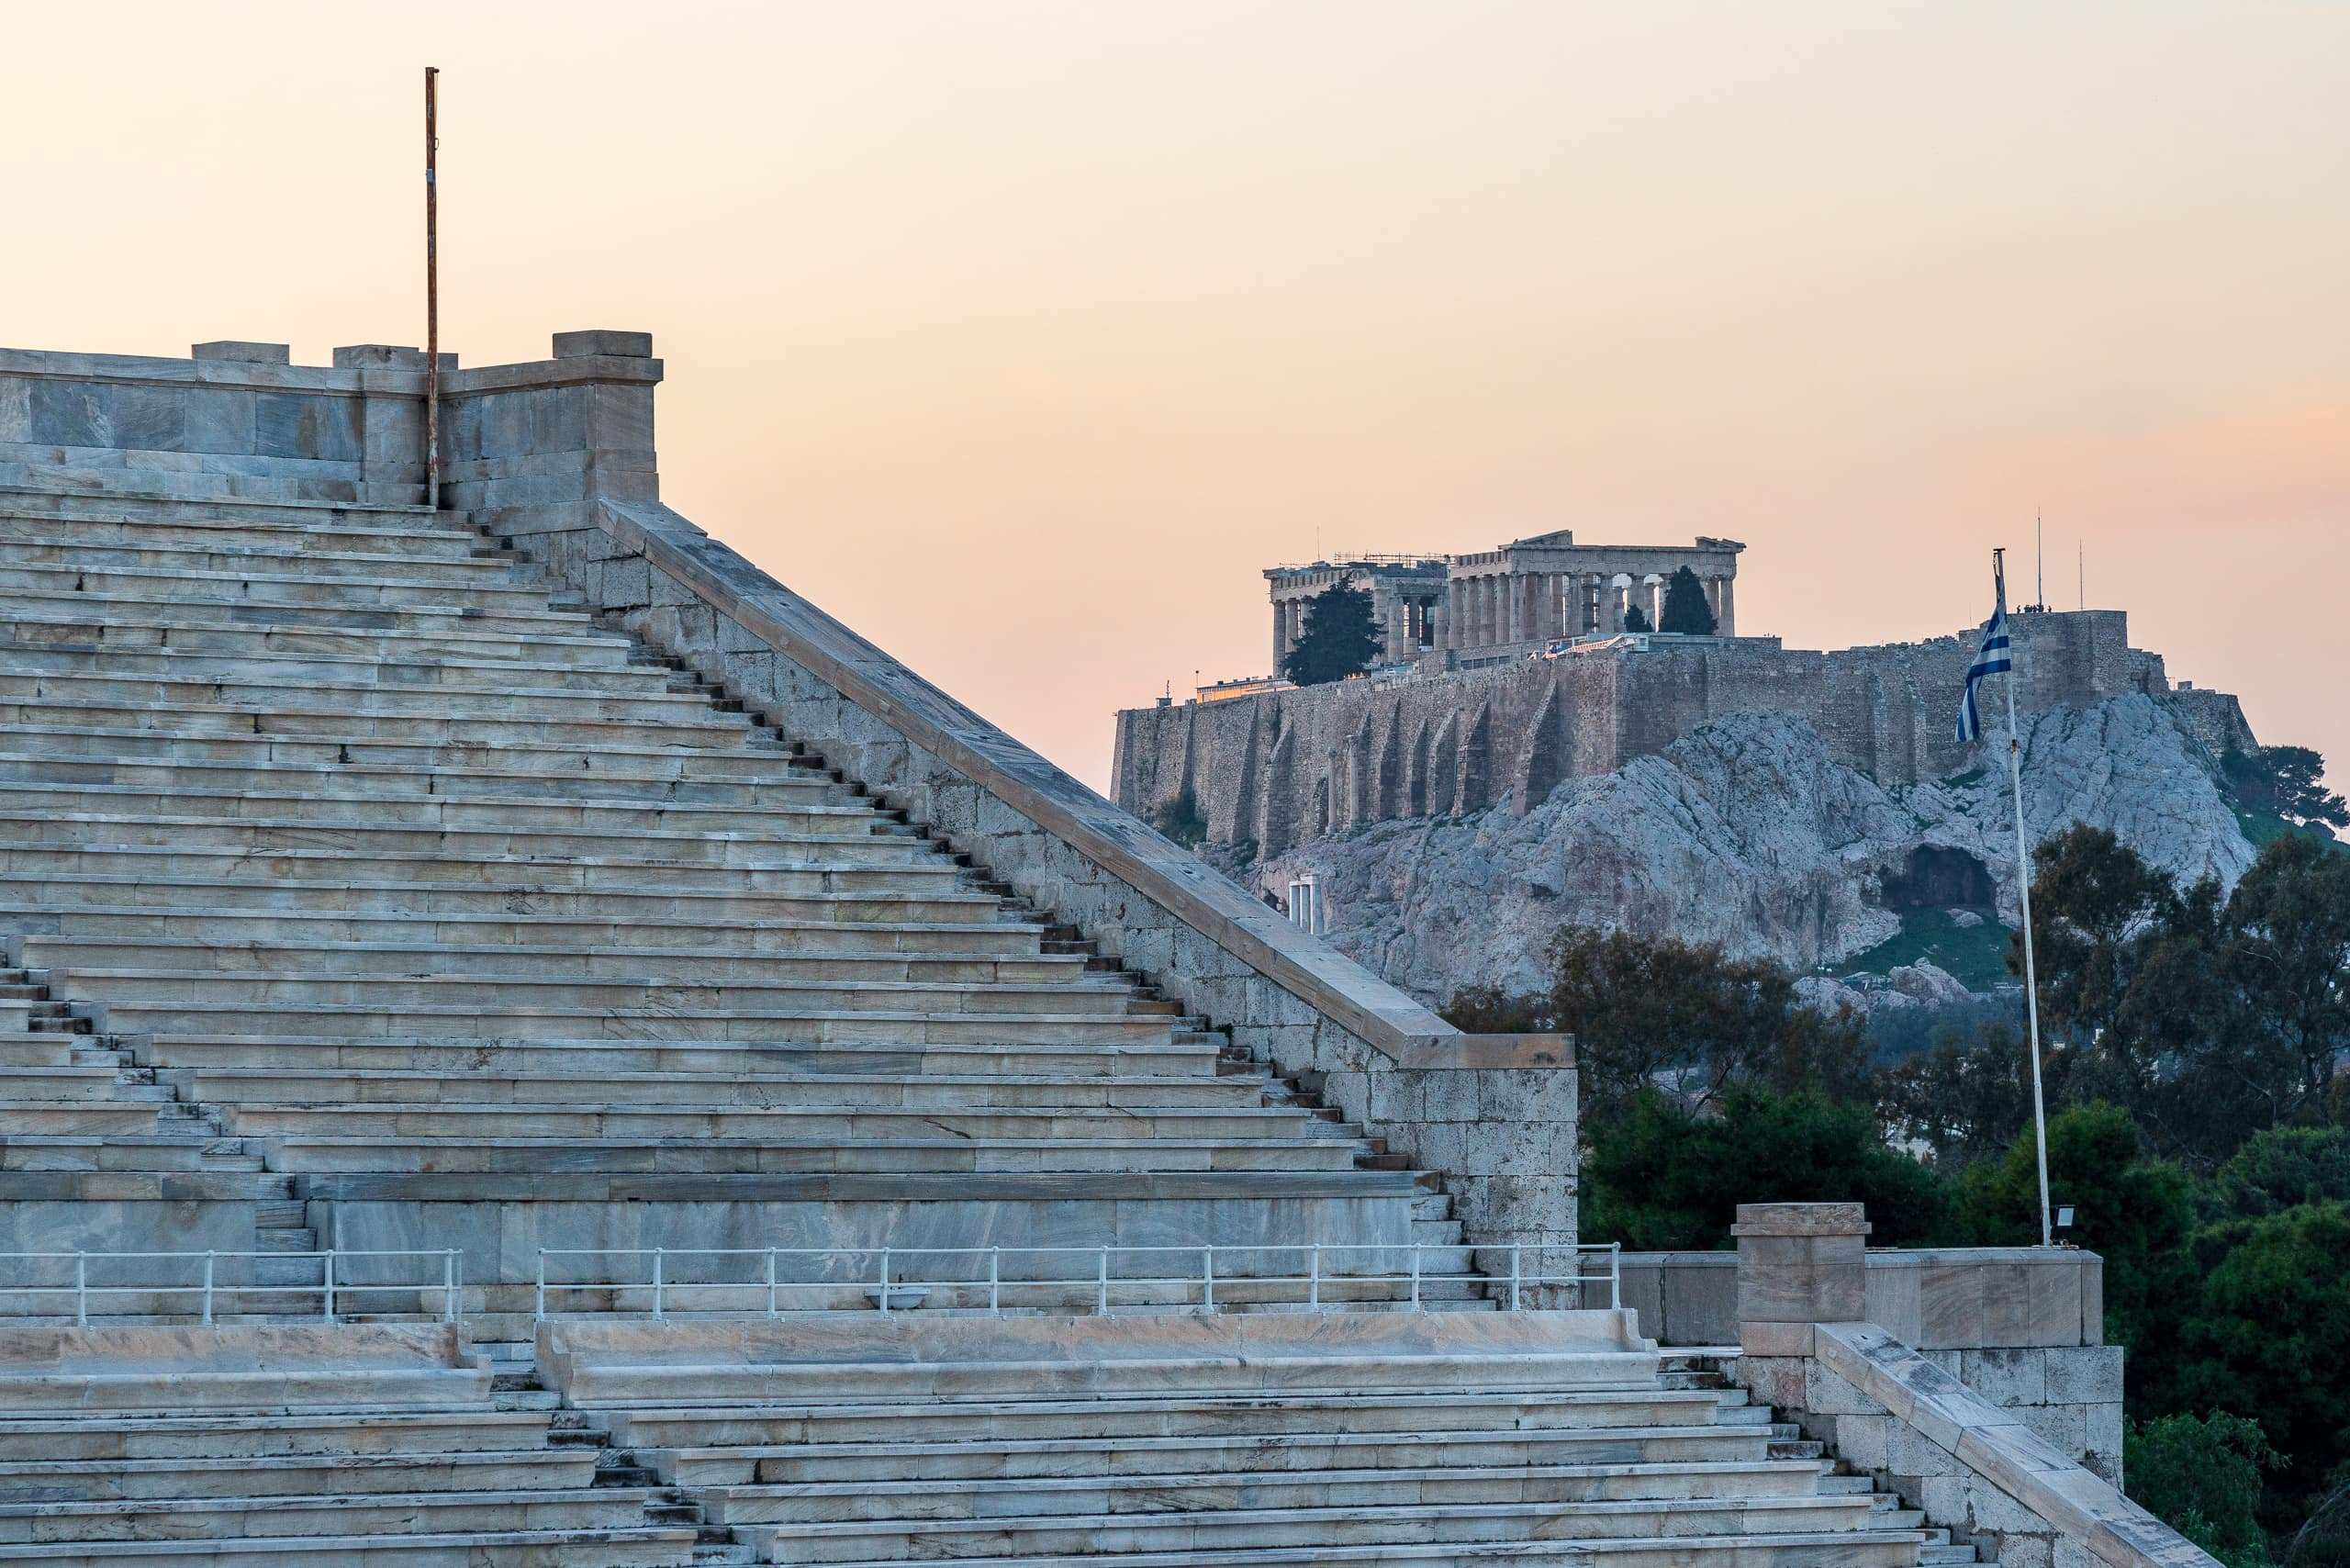 View from Panathenaic Stadium towards Parthenon